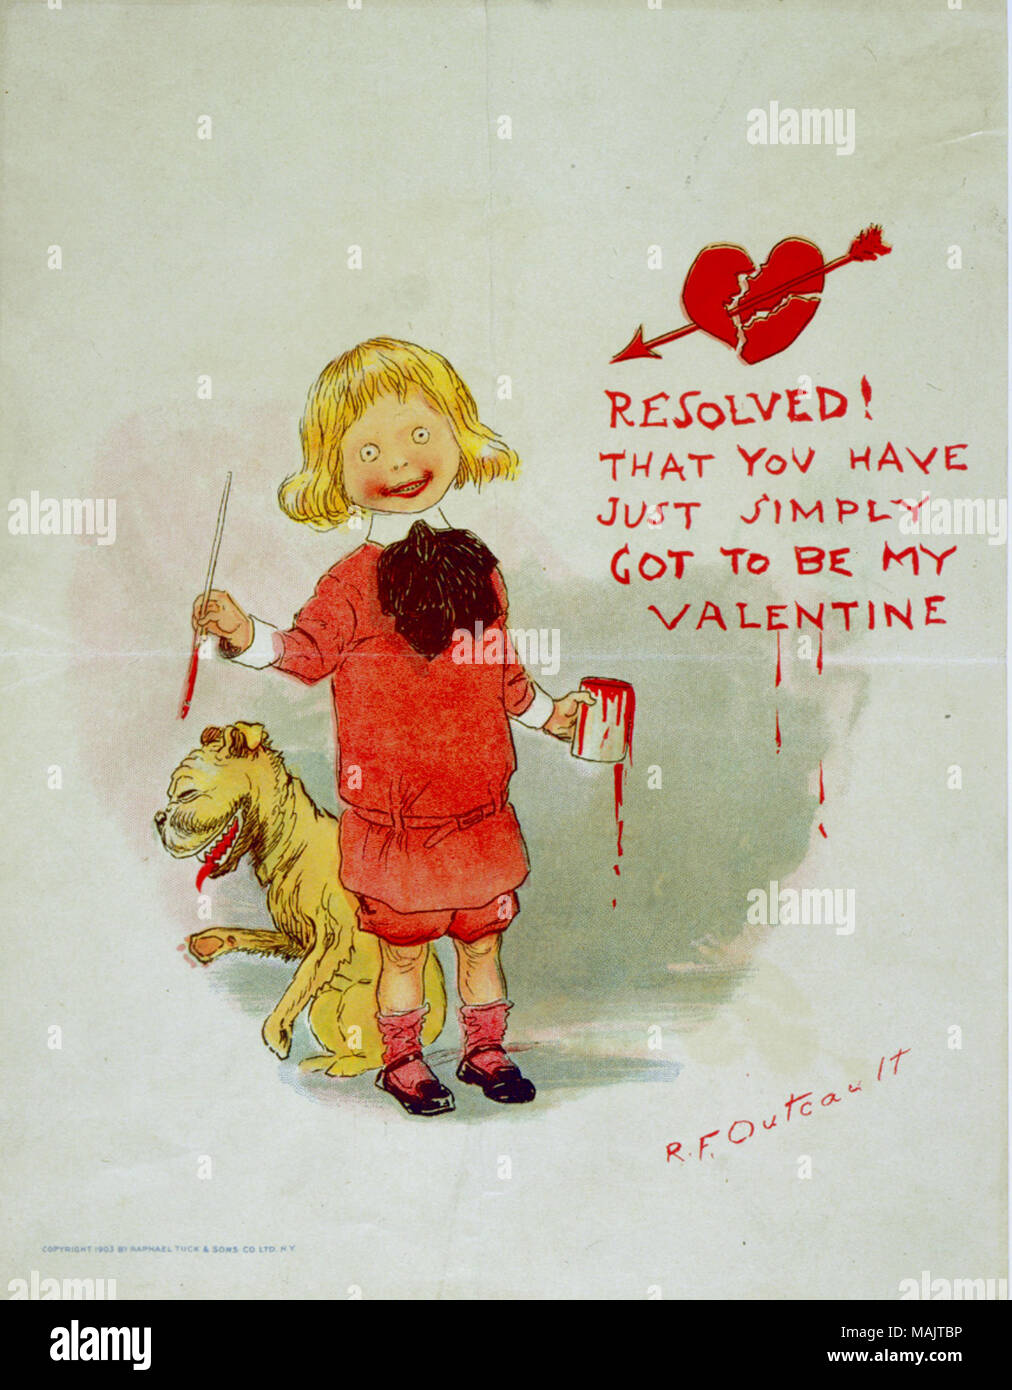 Title: 'Resolved! That You Have Just Simply Got to Be My Valentine' [Buster Brown and his bulldog, Tige].  . 1903. Richard Fenton Outcault - Stock Image